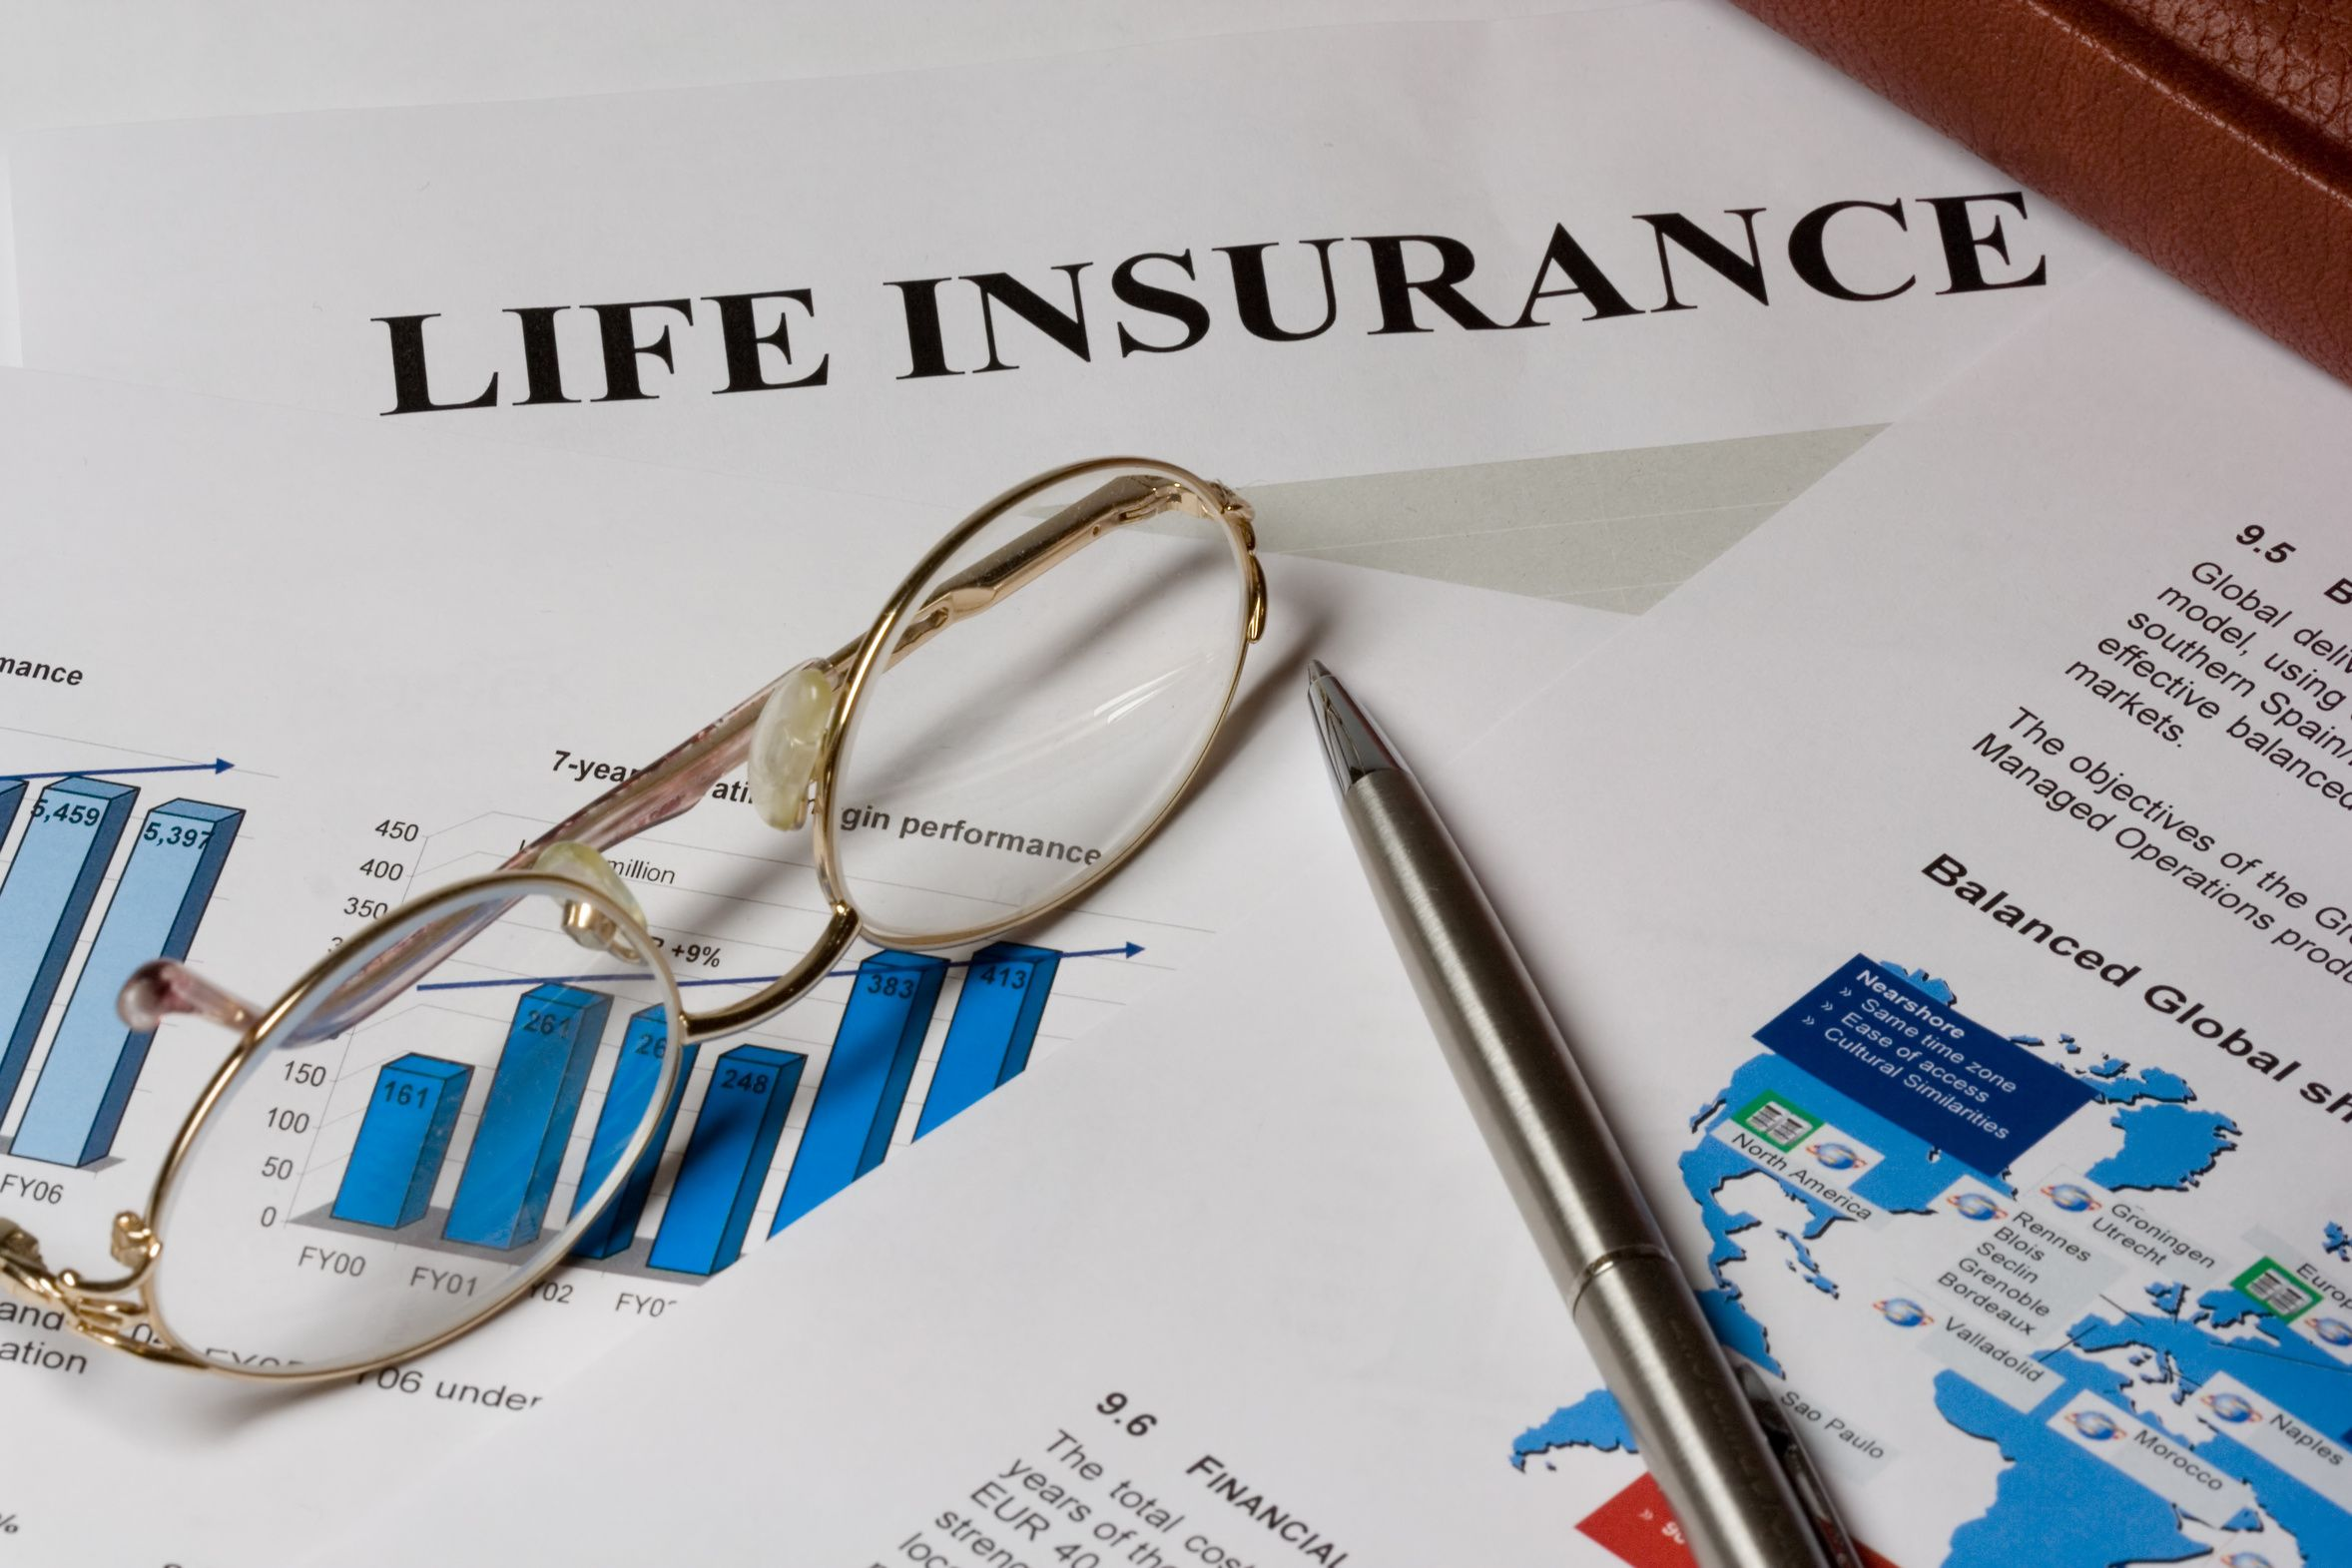 Onlineinsurancepackage Avails You With Life Insurance Policies And